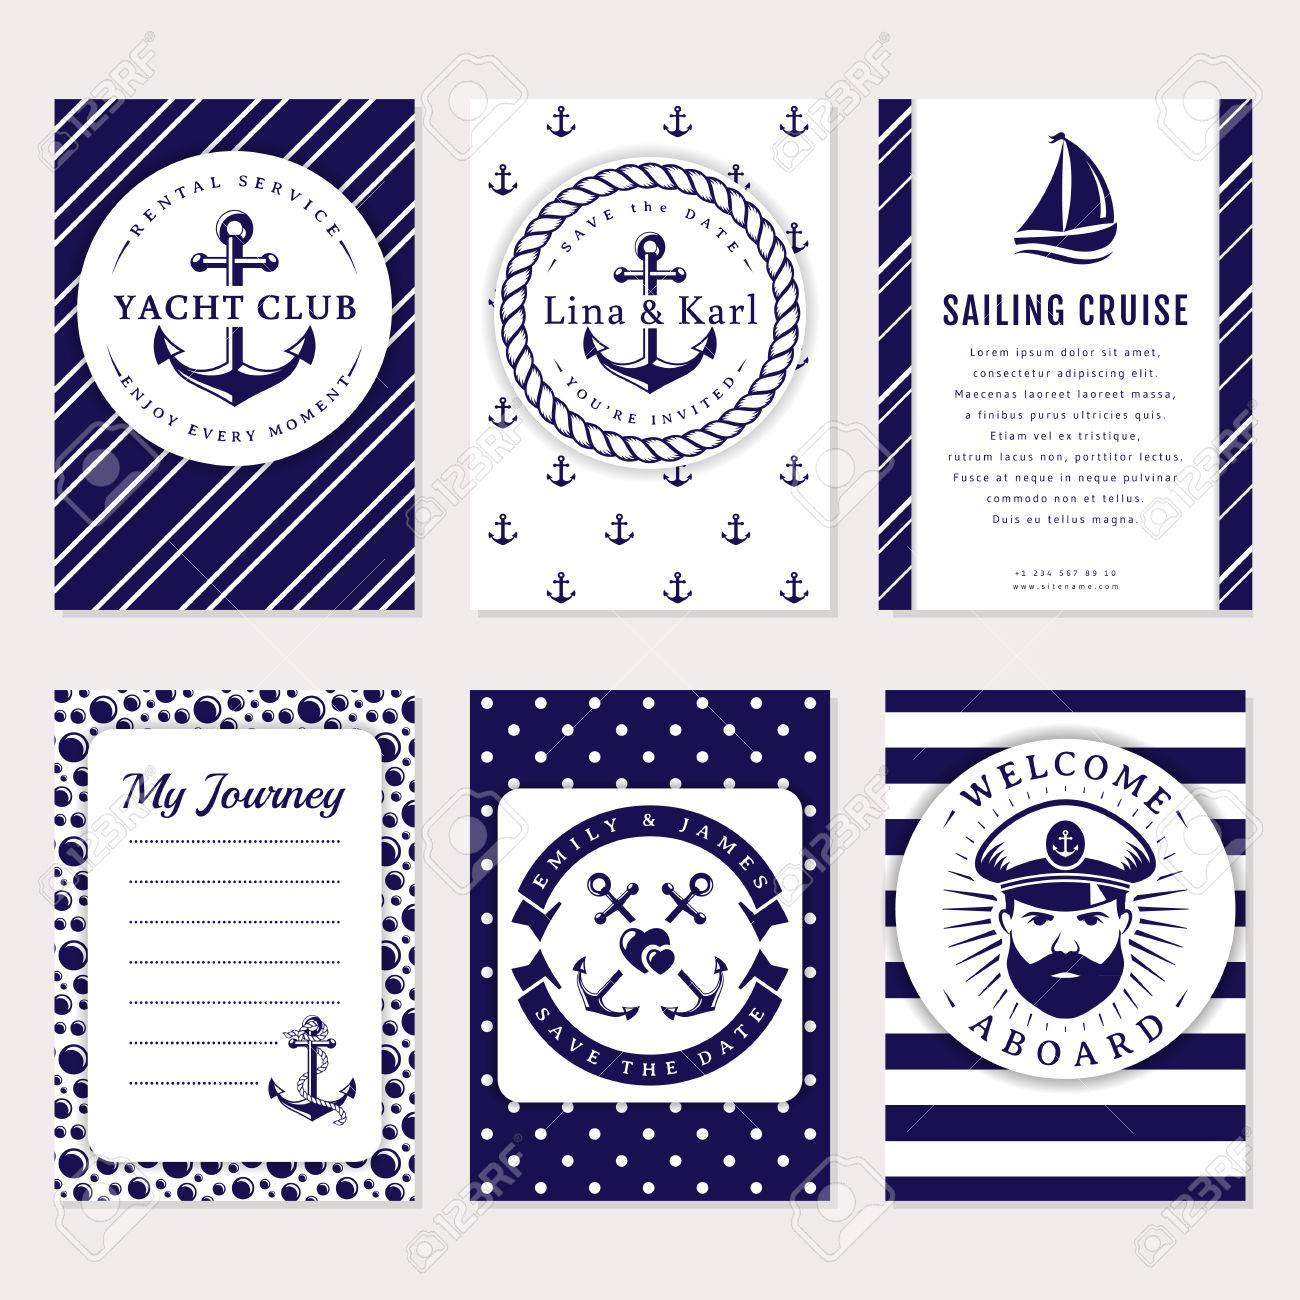 Marine Banners, Invitations And Flyers Set. Elegant Card Templates ...